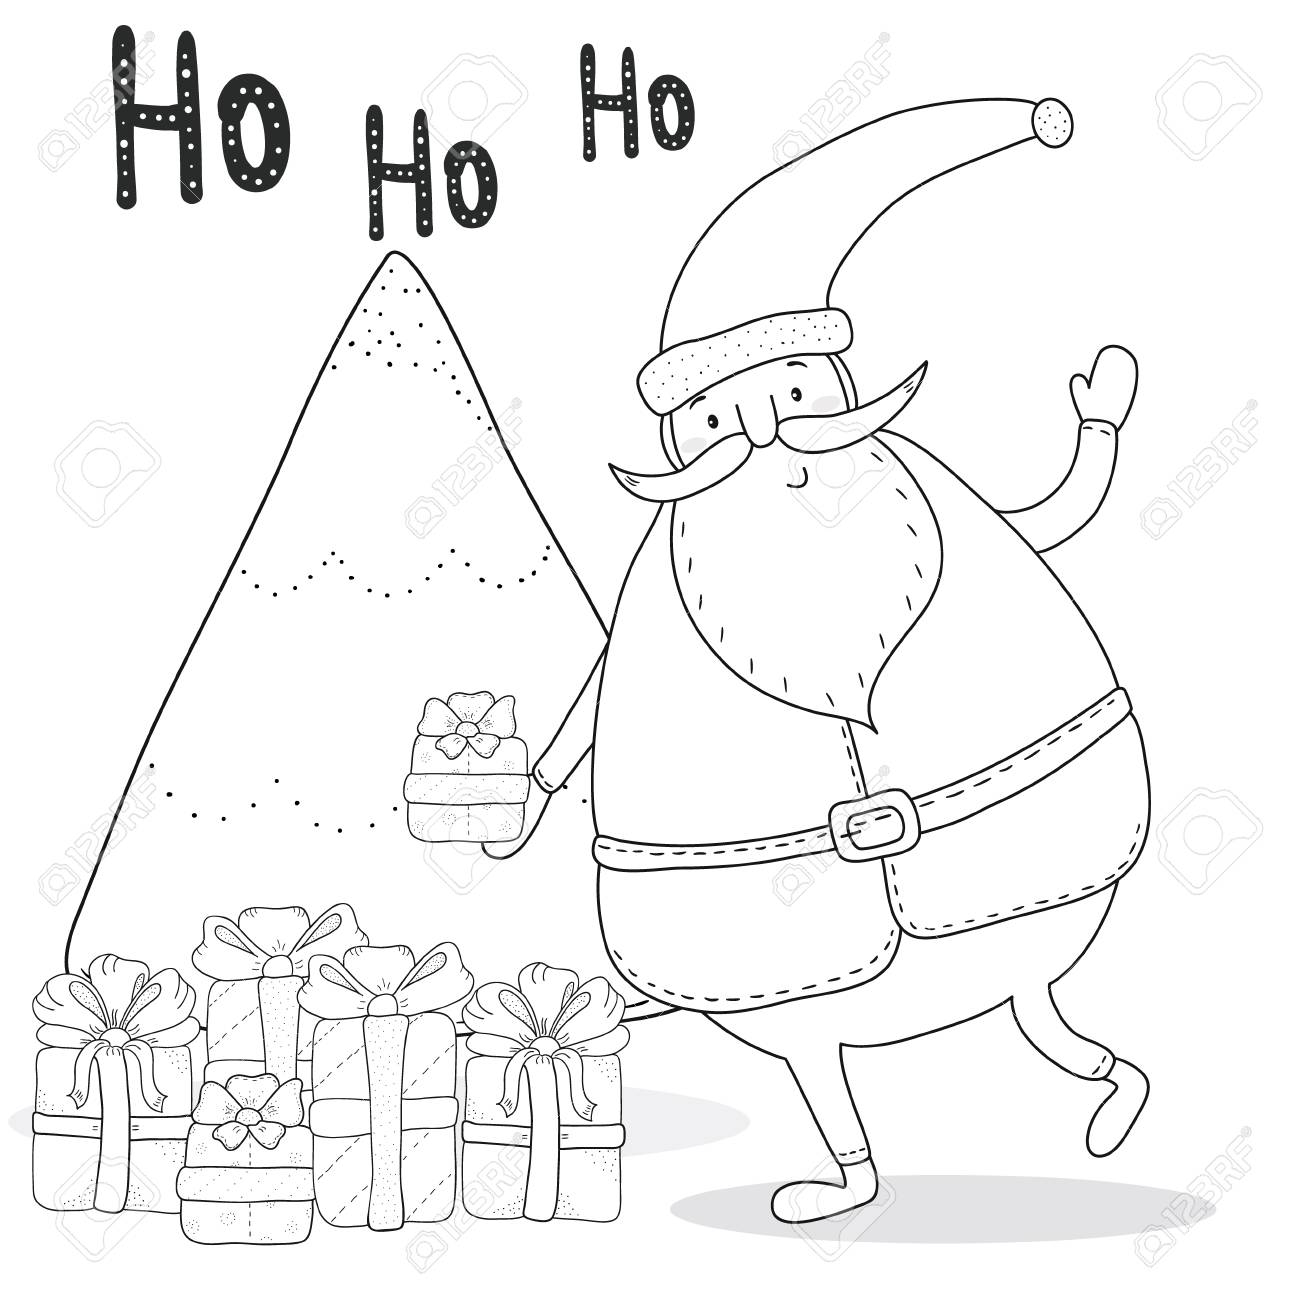 Christmas Coloring Page With Santa Claus, Christmas Tree, Gift ...